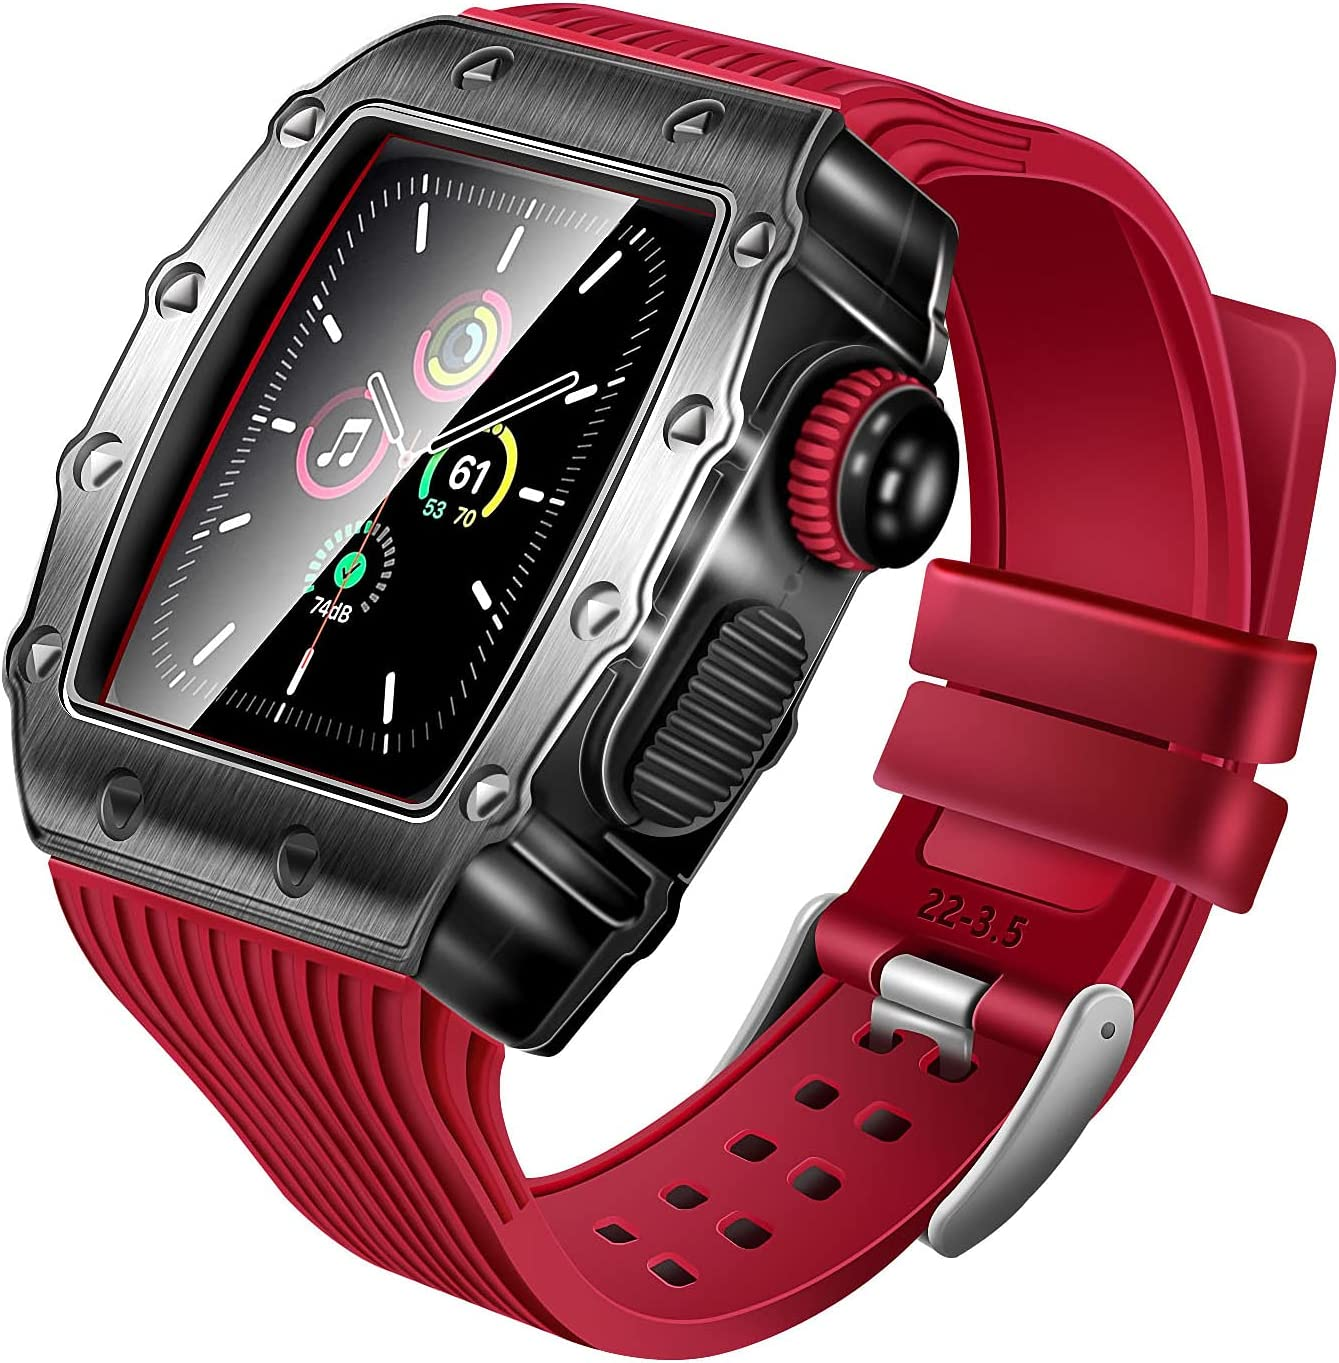 Metal Case for Apple Watch 6 Band 44mm Protective Rugged Bumper Cover with Tempered Glass Screen Protector Silicone Strap for iWatch Series 5 4 Accessories Mens Heavy Duty Shockproof Case Film (Red)